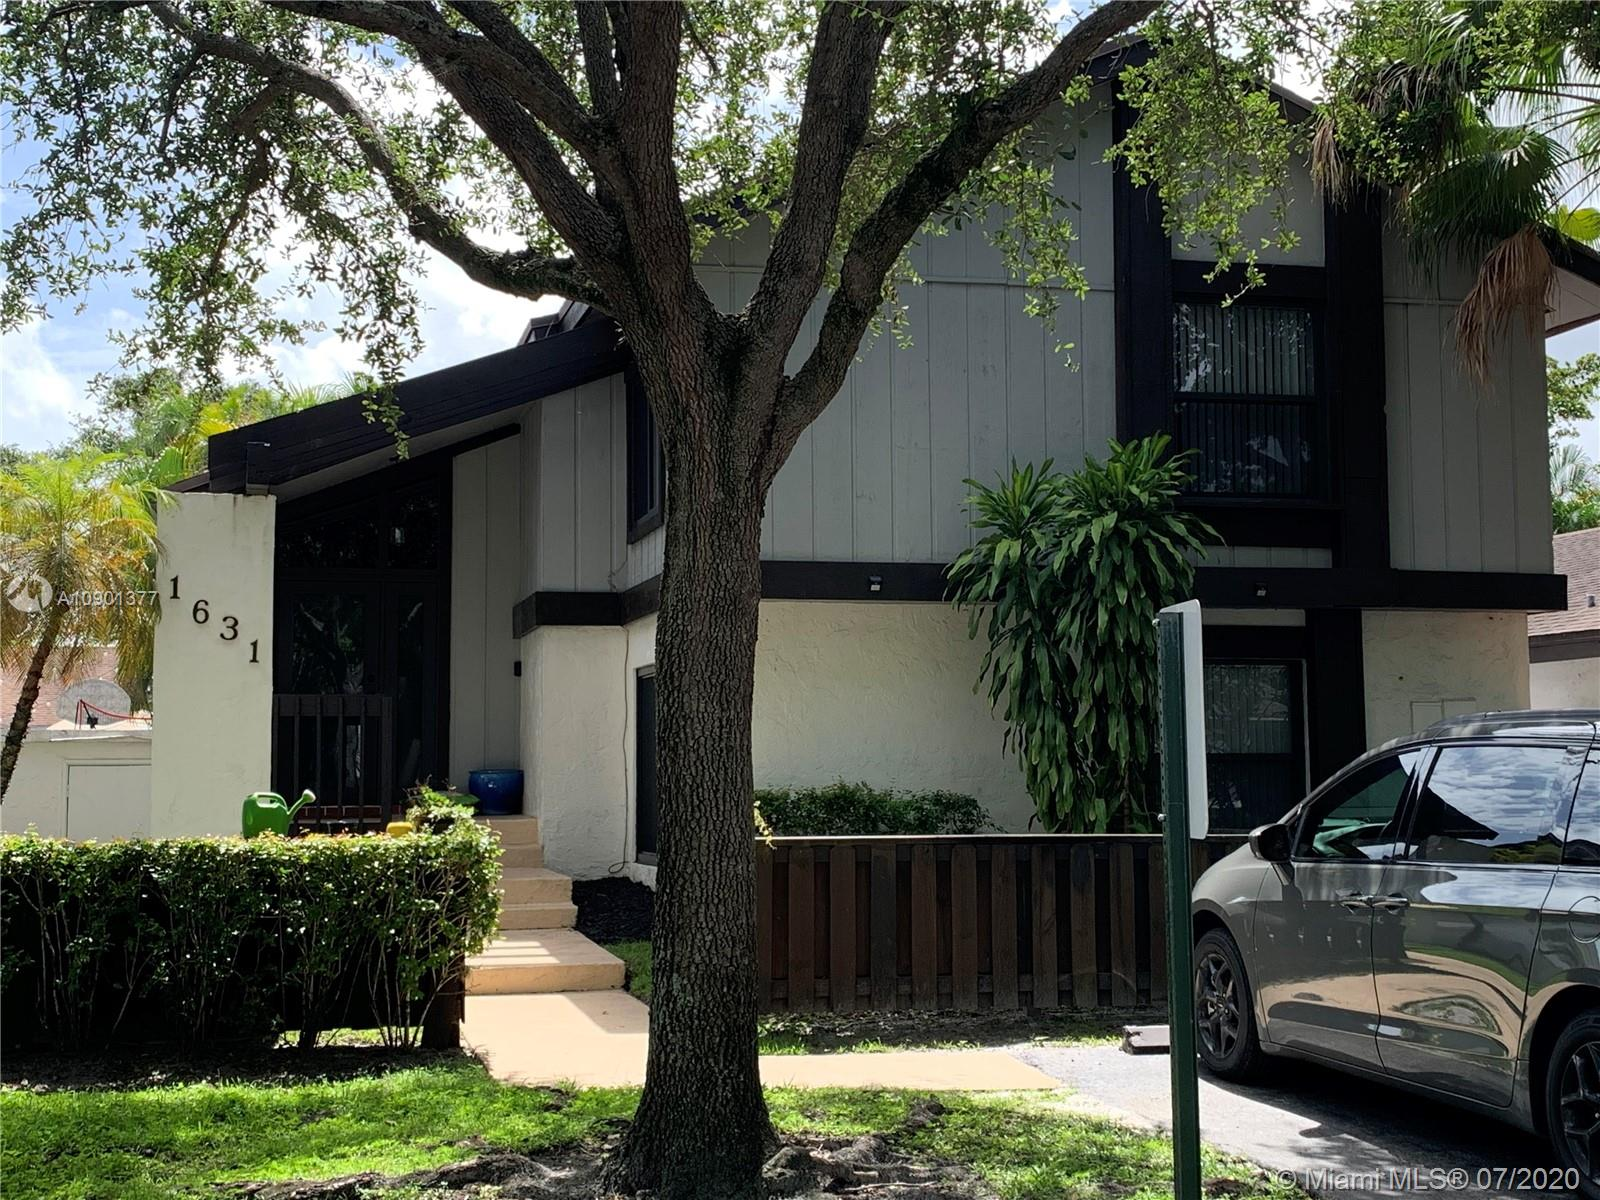 Remodeled 3 beds/2.5 baths 2-Story Single Family Home in Arbor Green at Pembroke Lakes. Vaulted Ceiling, New Impact Windows and Sliding doors. Open space on main floor with tons of light. New flooring throughout the home, New A/C unit. Nice size fenced back yard make this great for entertaining.  Large family room plus spacious living room and bedroom sizes for comfortable living. Loft/Office area at the top of the stairs.